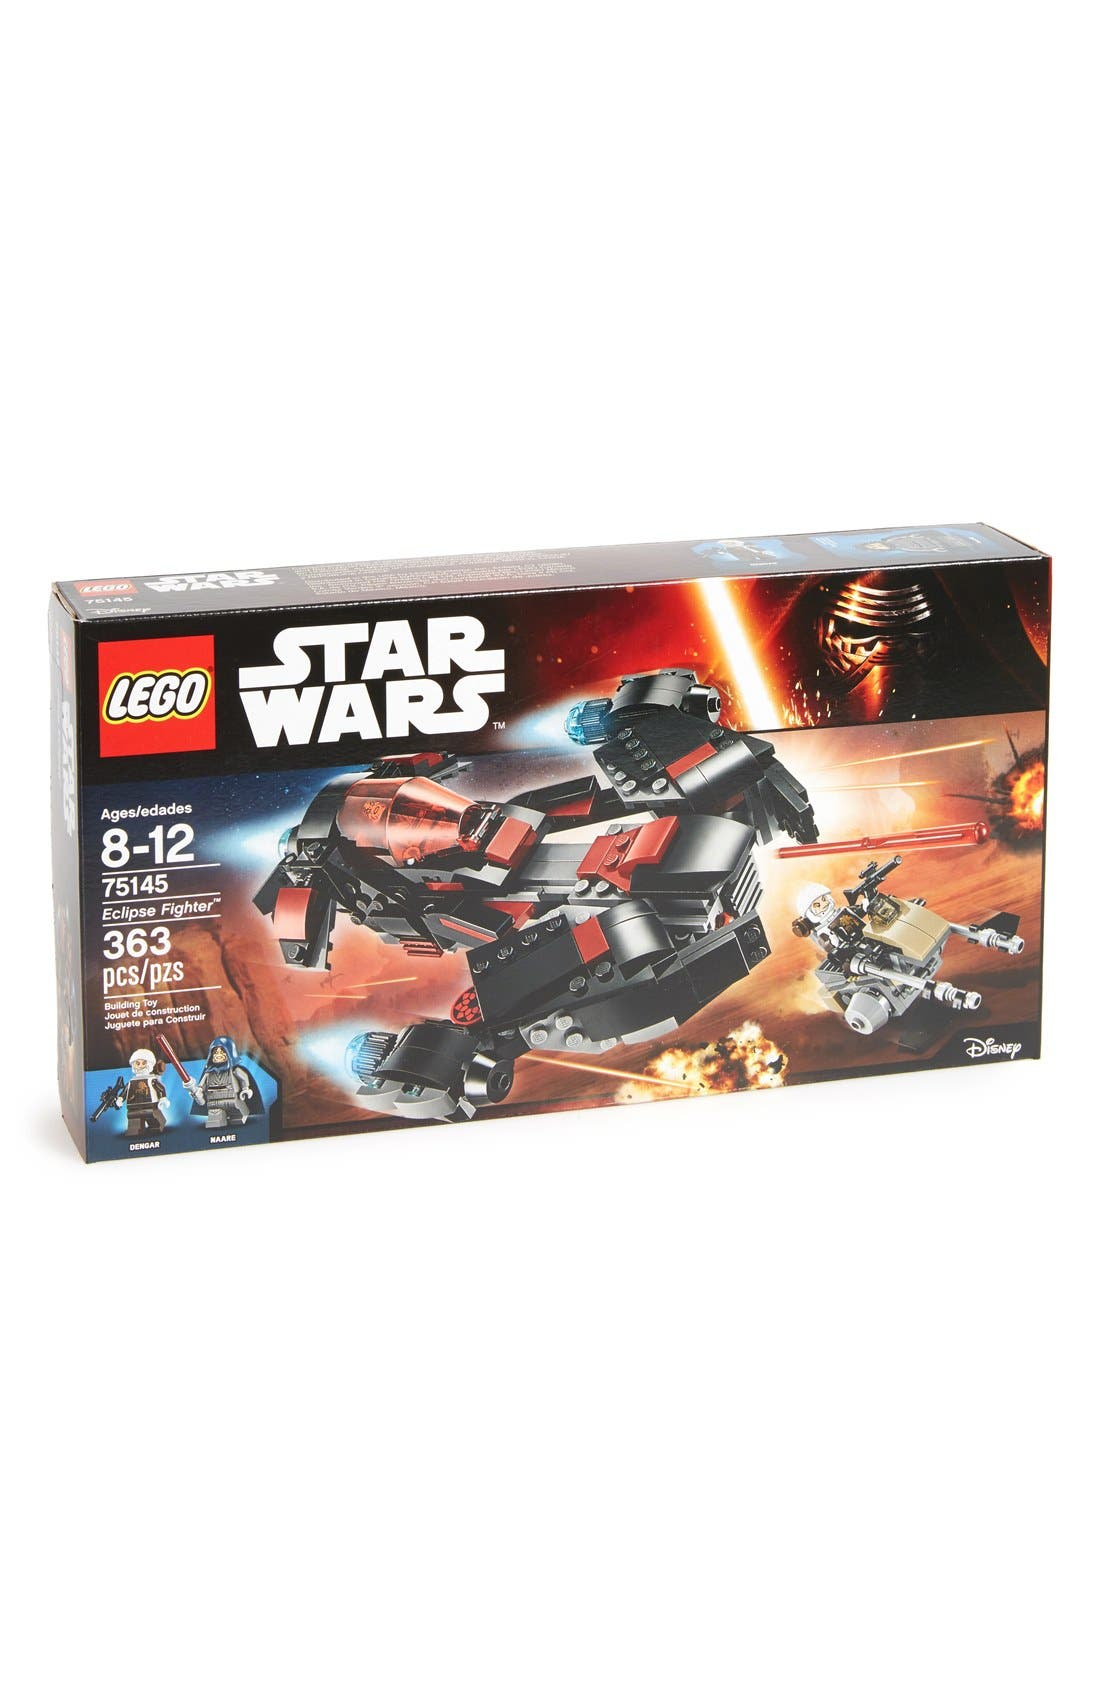 LEGO® Star Wars Eclipse Fighter™ - 75145